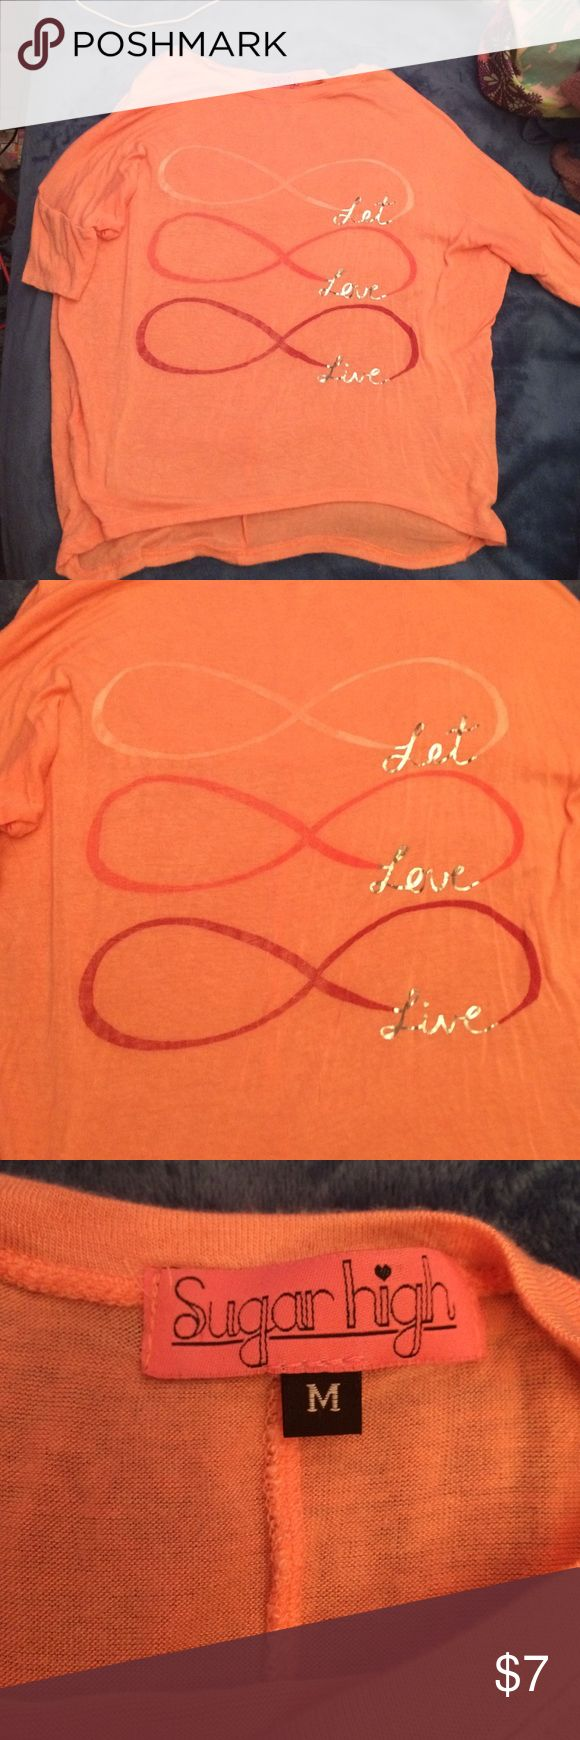 Infinity Shirt! An orange infinity shirt! Great condition! Coming from a smoke free home! sugar high Tops Tees - Short Sleeve